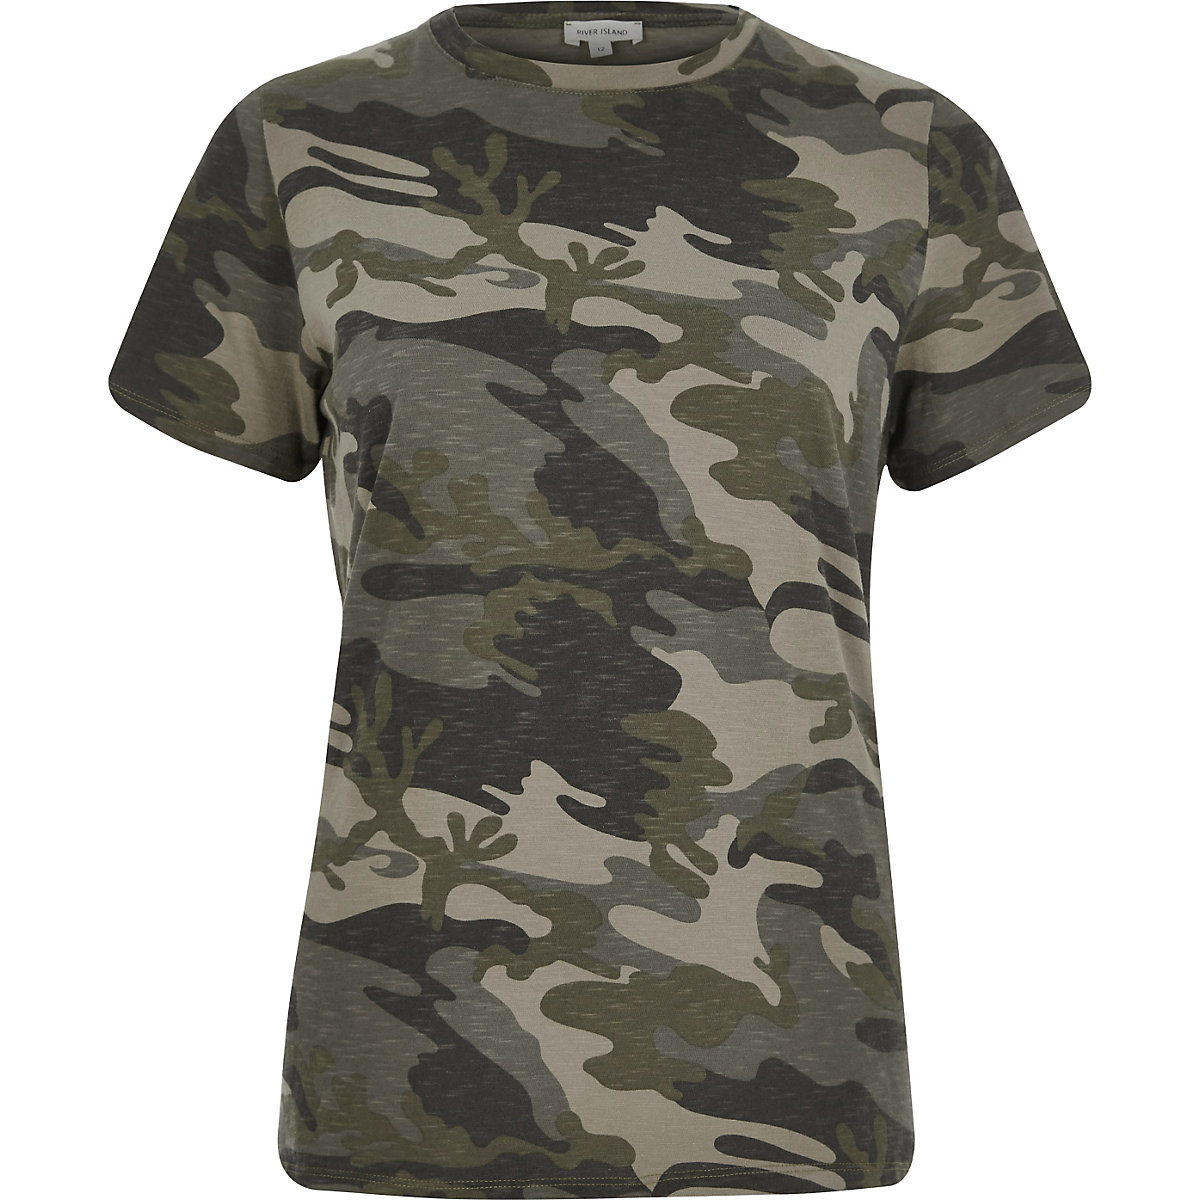 Khaki camo fitted T-shirt